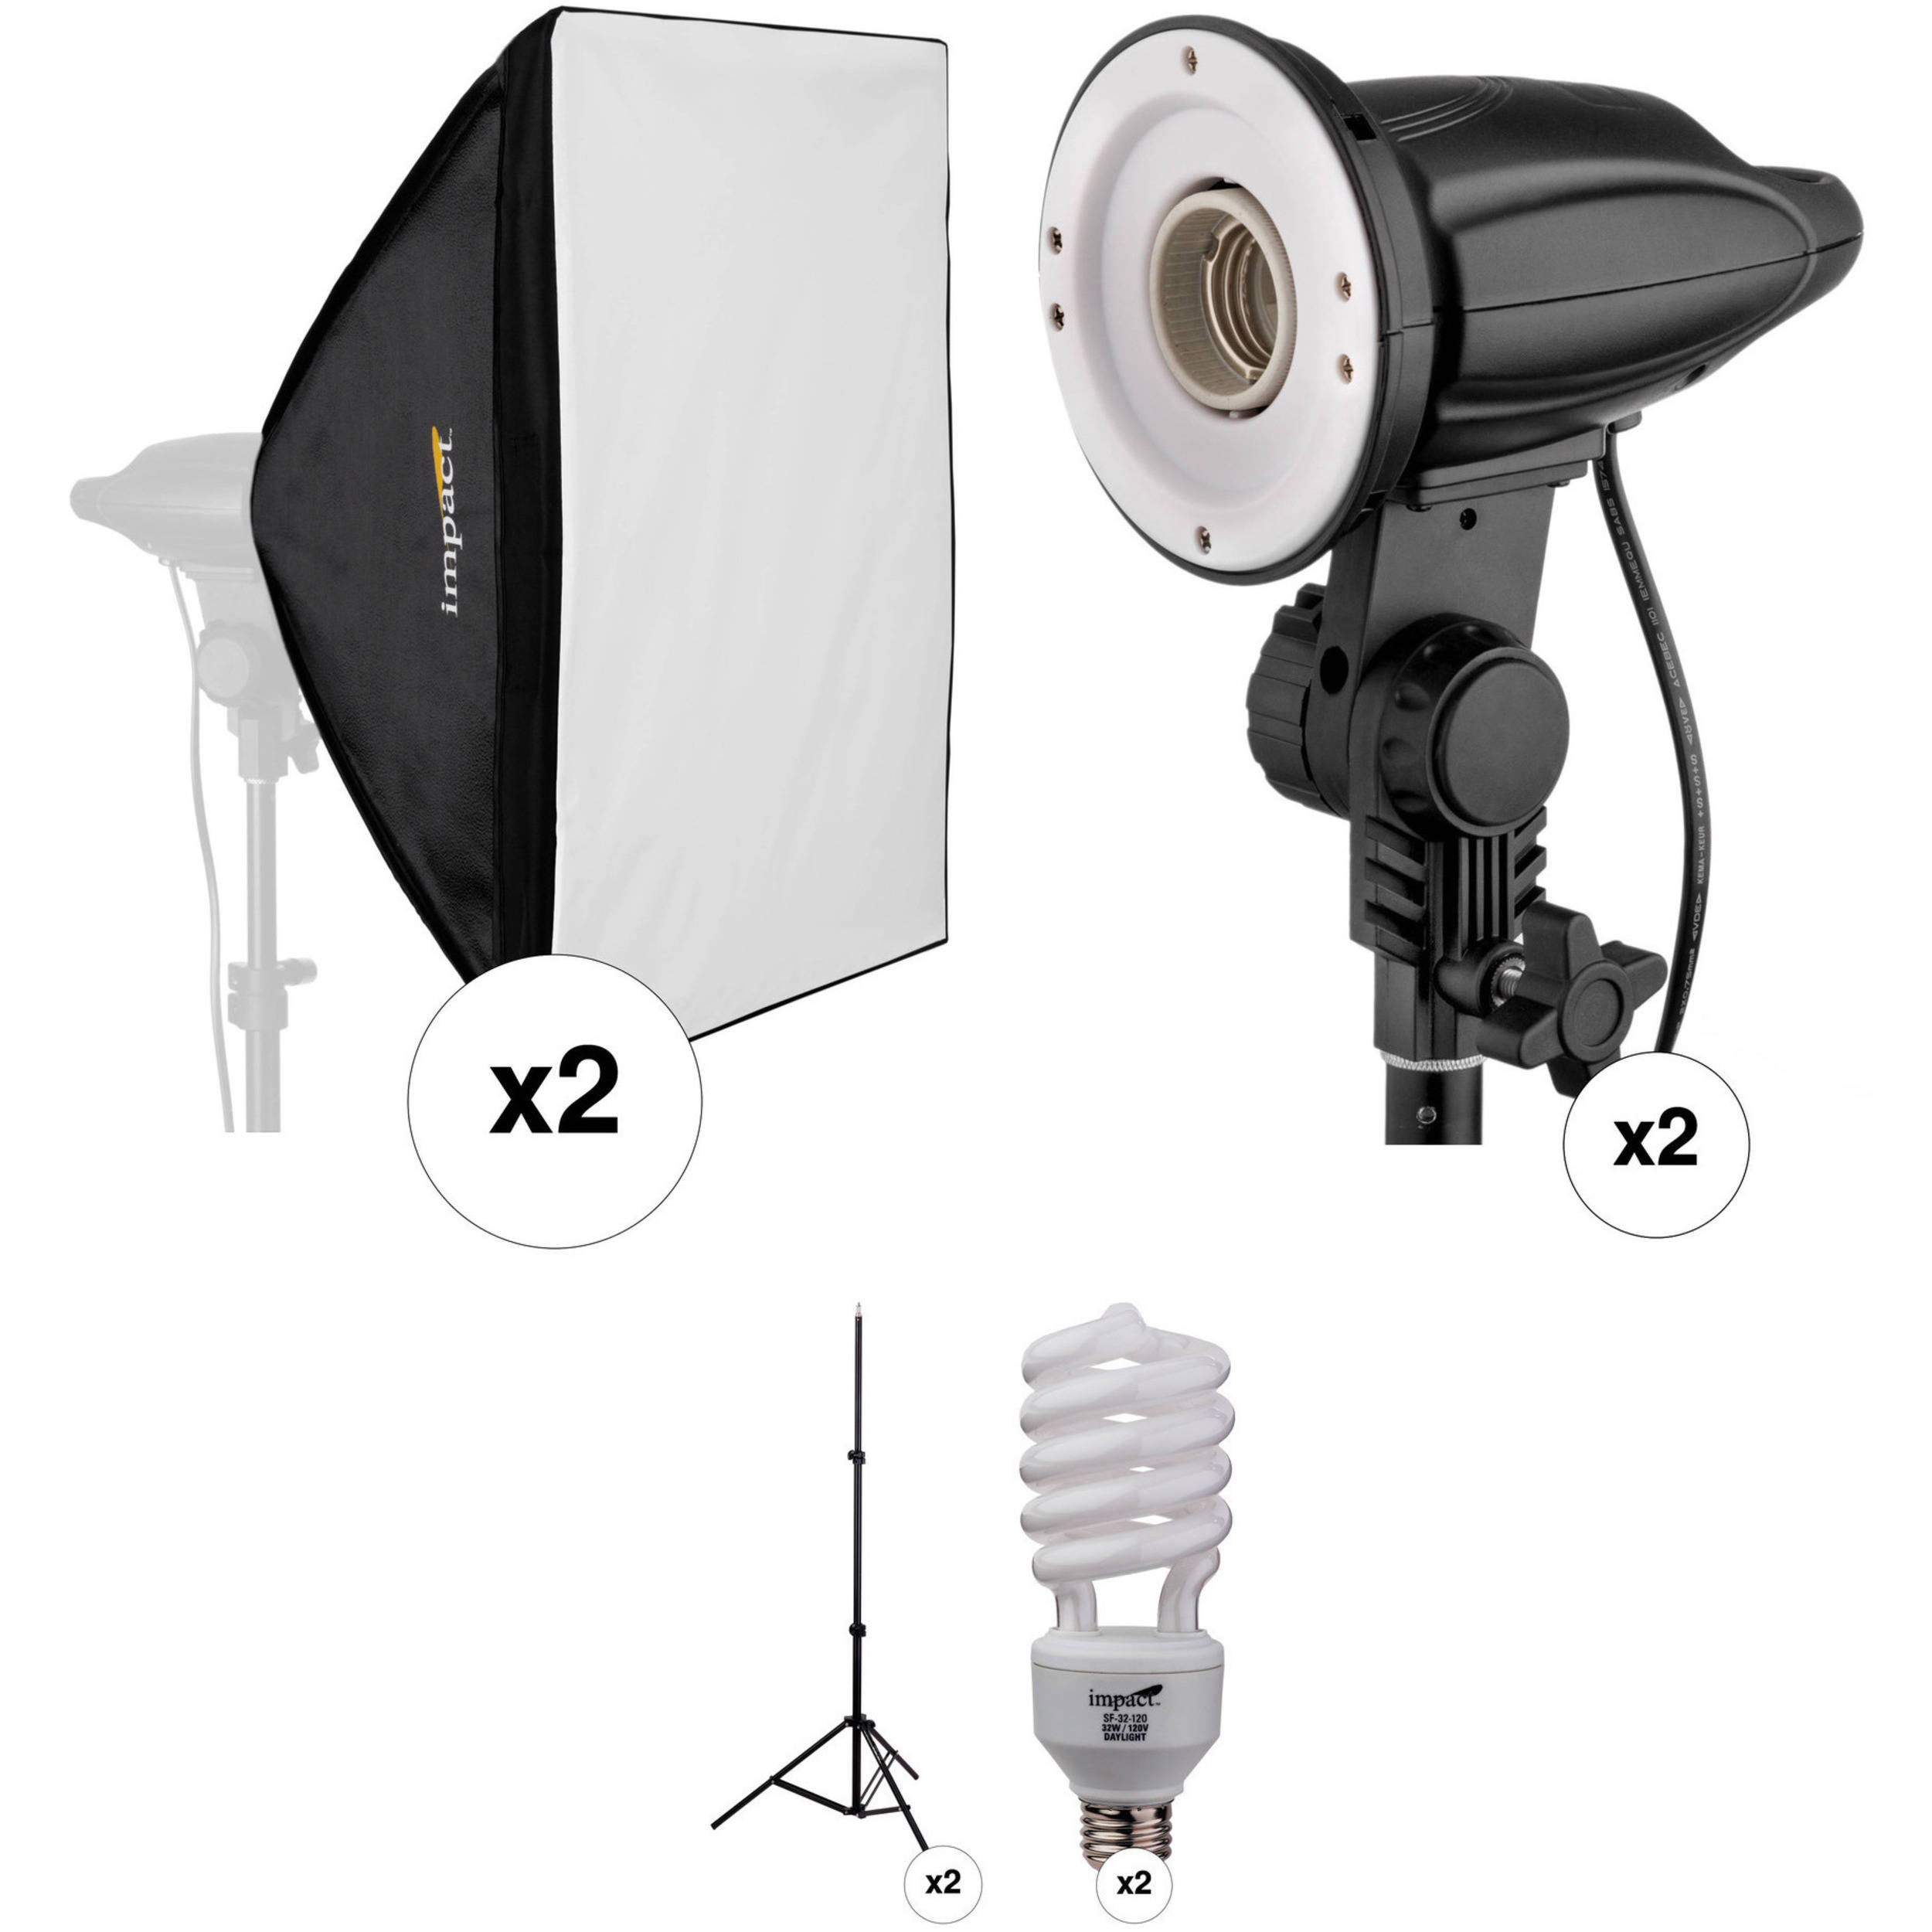 Responsible Super 2 Dual Arm White Led Music Stand Light Lamp New Clients First Lights & Lighting